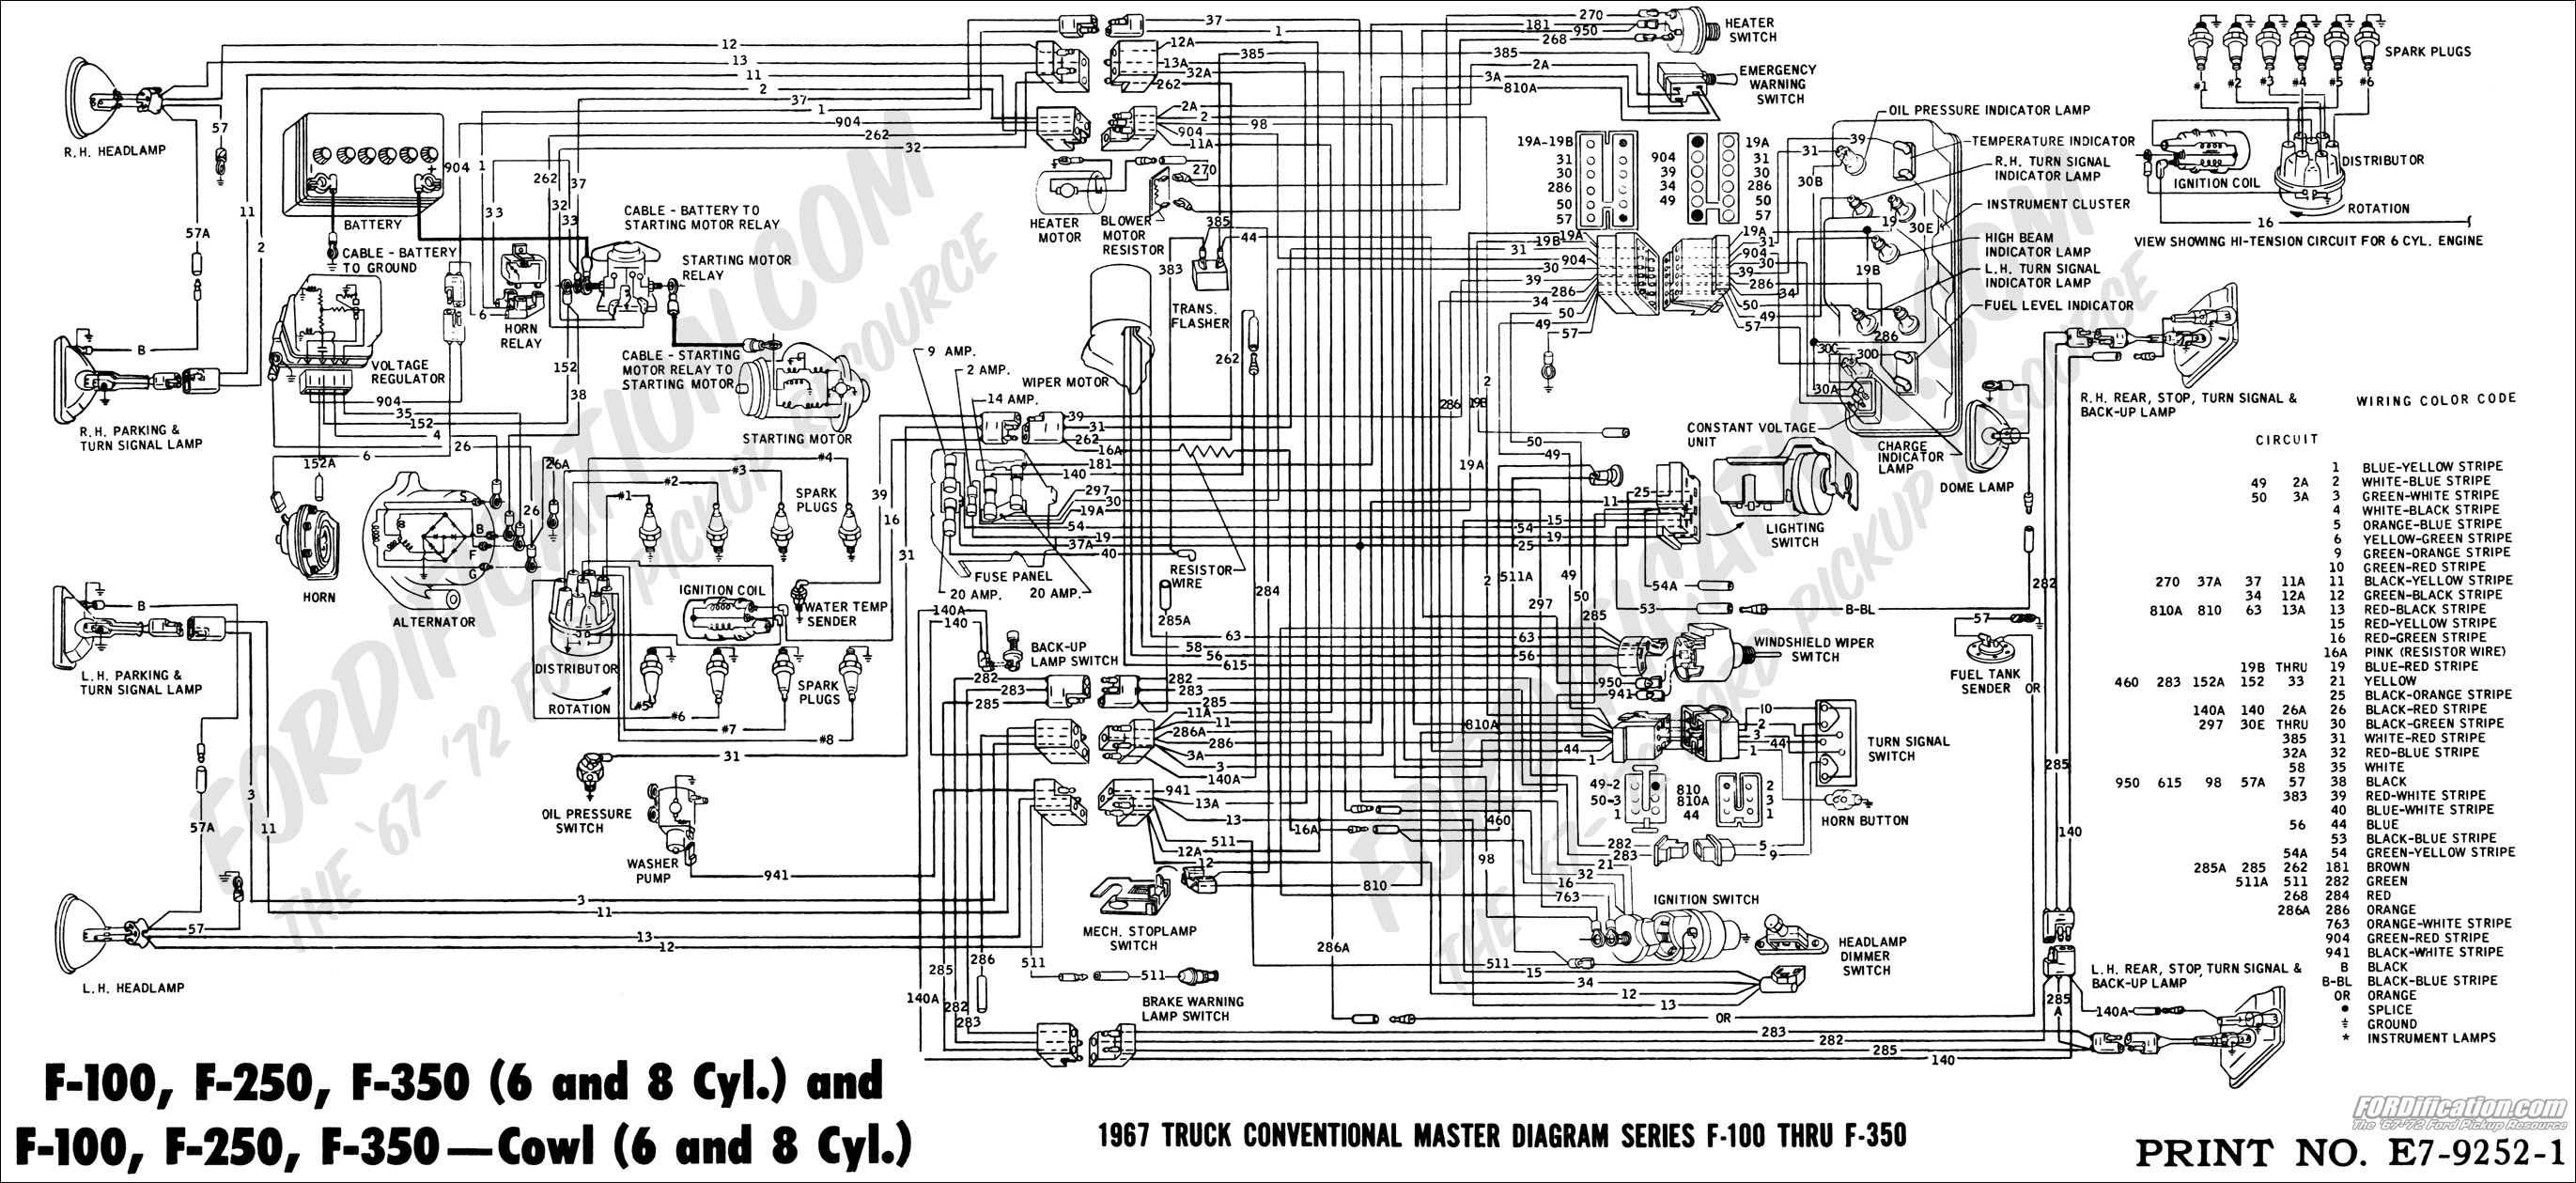 1999 ford f150 wiring schematic detailed schematics diagram rh  keyplusrubber com Ford Truck Engine Parts Diagram Ford Engine Diagram